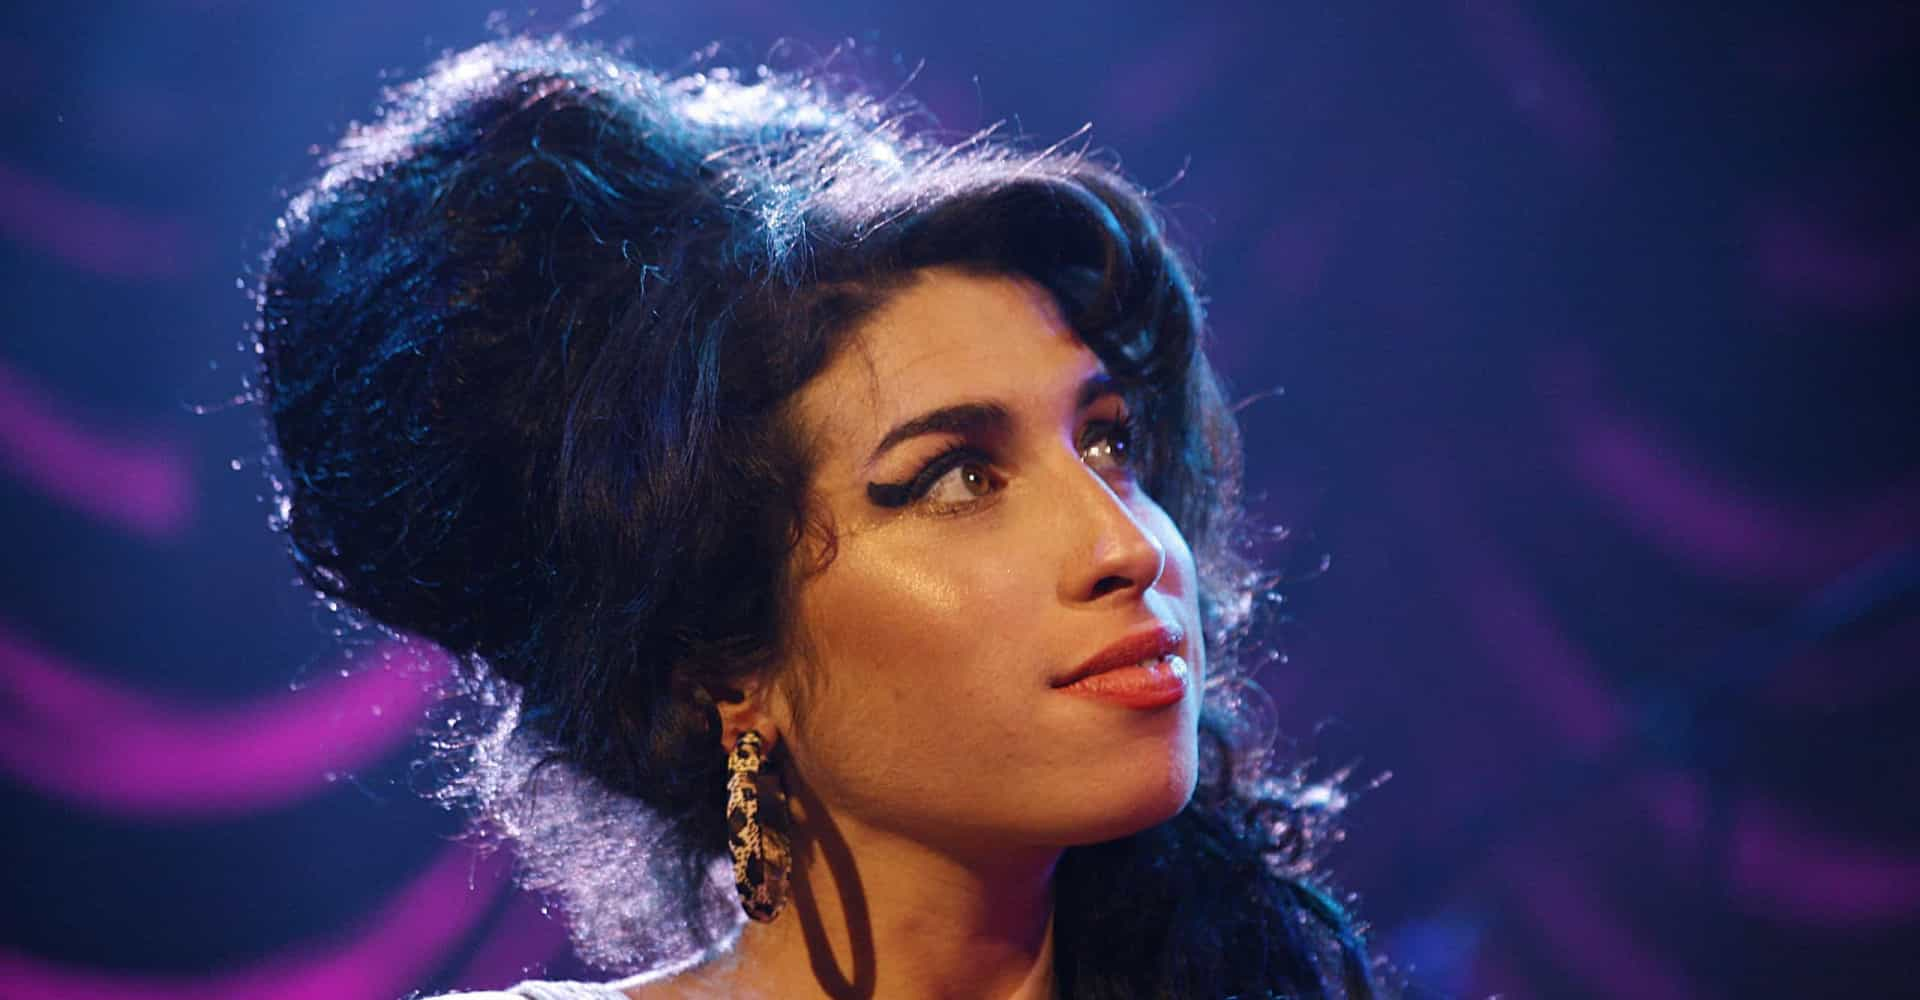 Remembering Amy Winehouse and other artists who died young